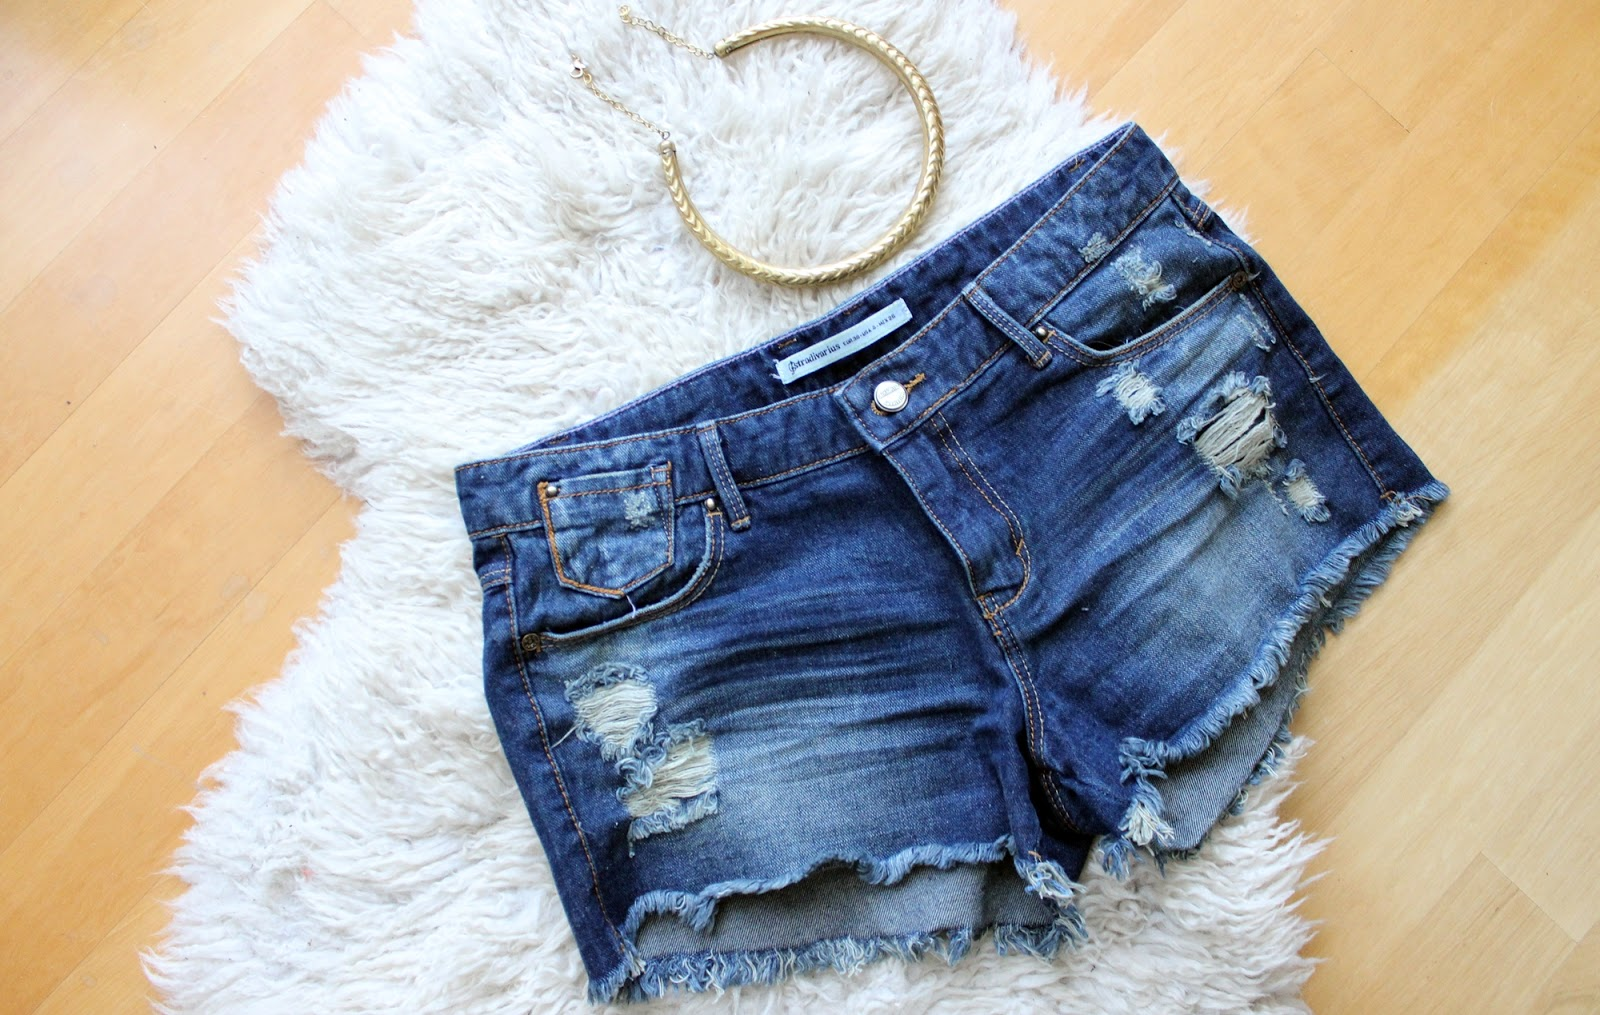 Barcelona shopping haul statement necklace mango shorts denim jeans ripped stradivarius